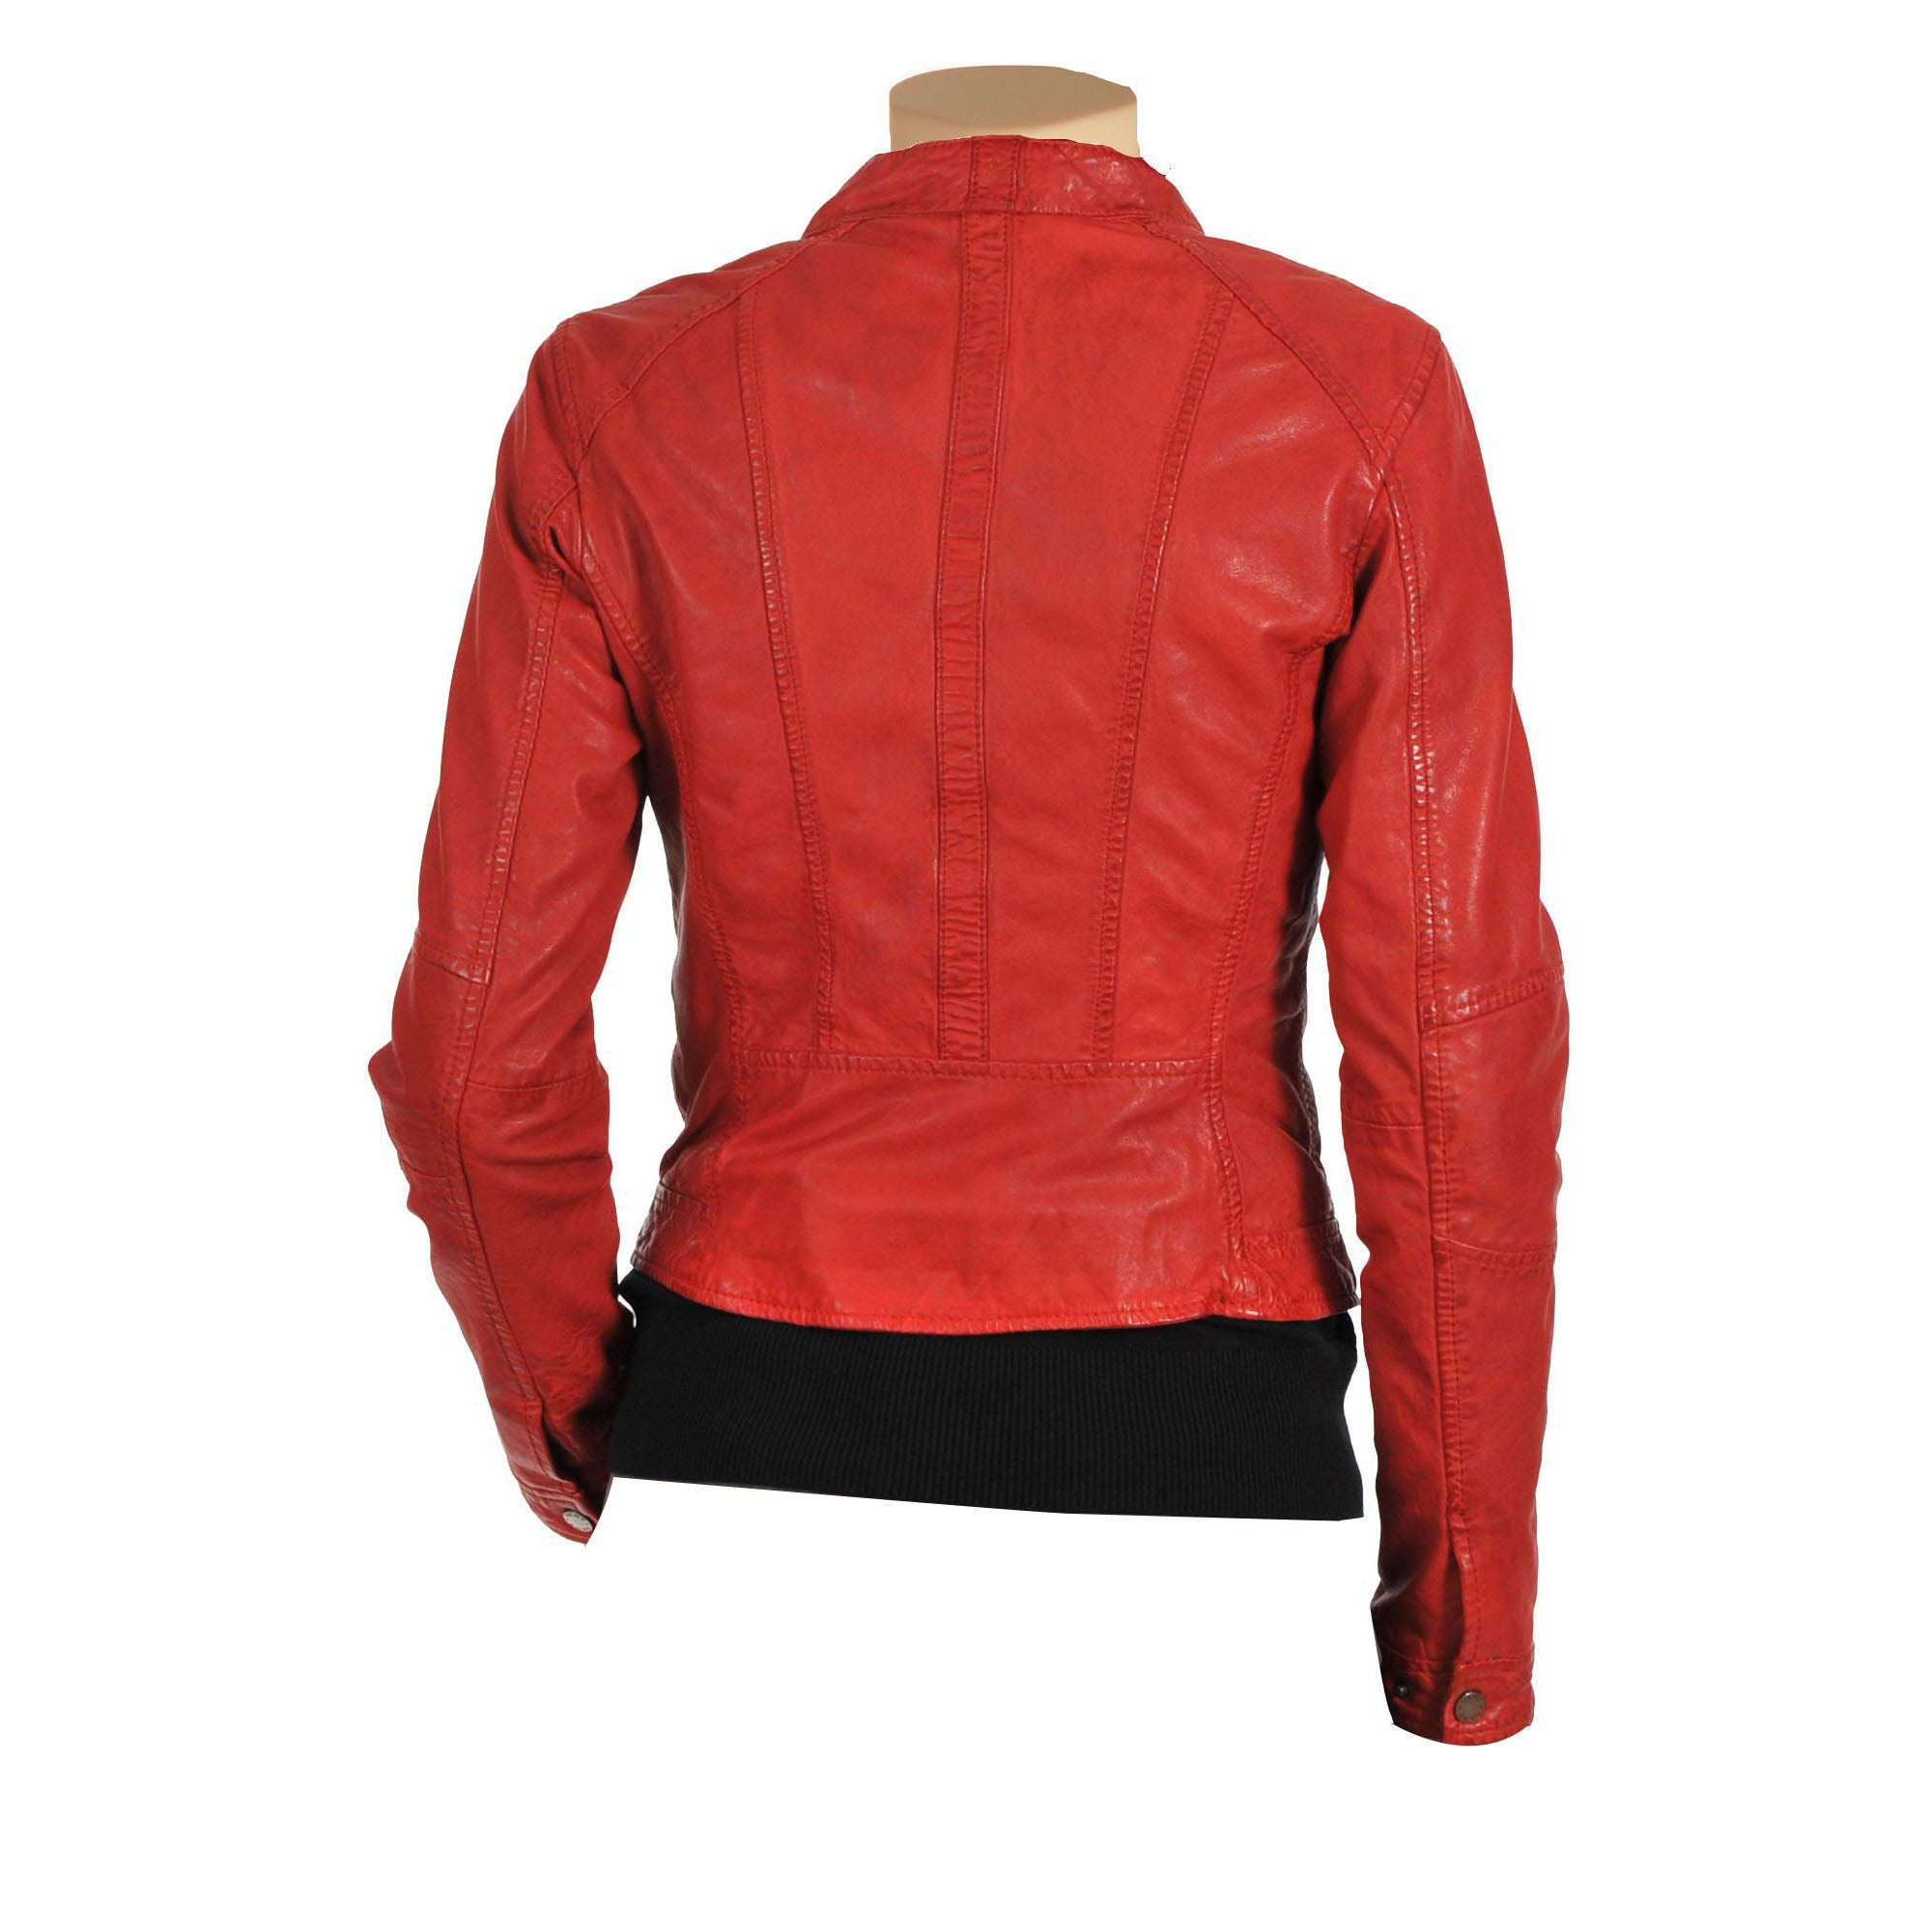 Women's Red moto style leather jacket - Lusso Leather - 2